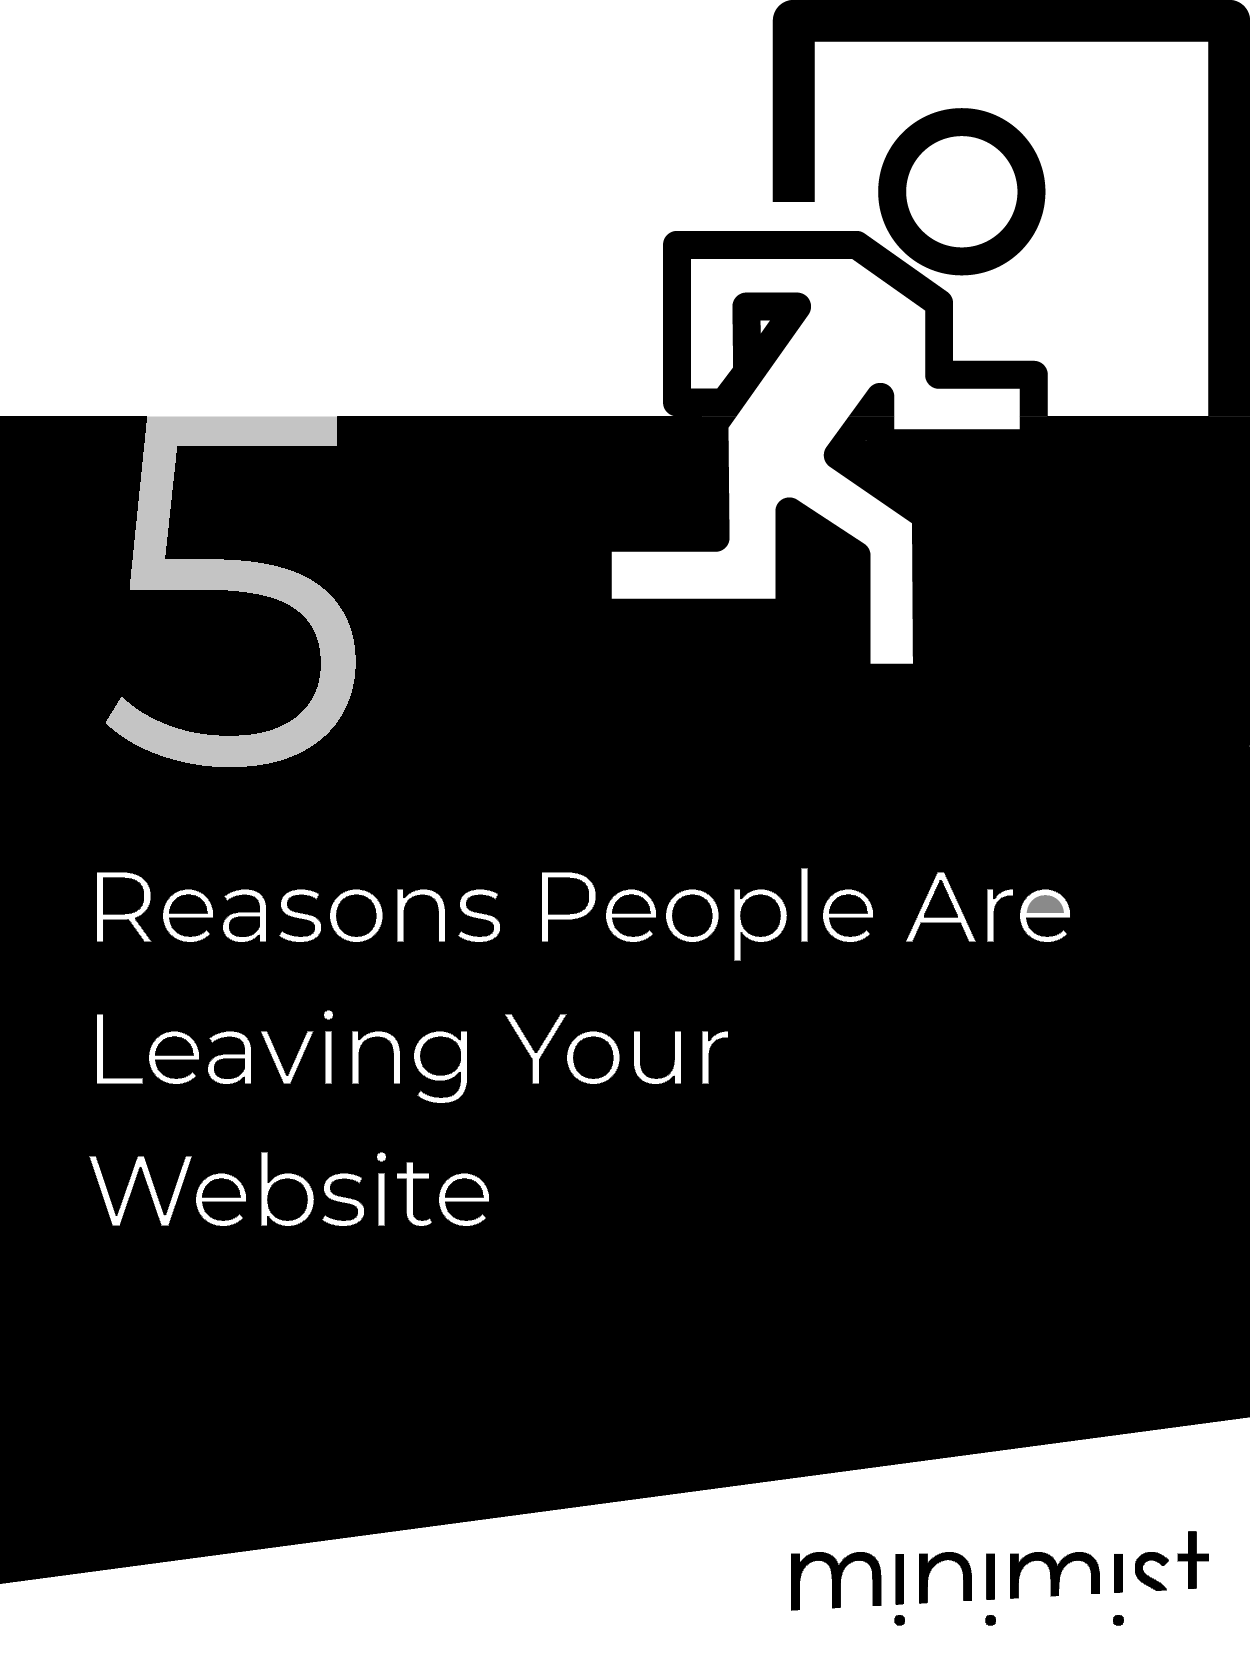 5 Reasons People Are Leaving Your Website